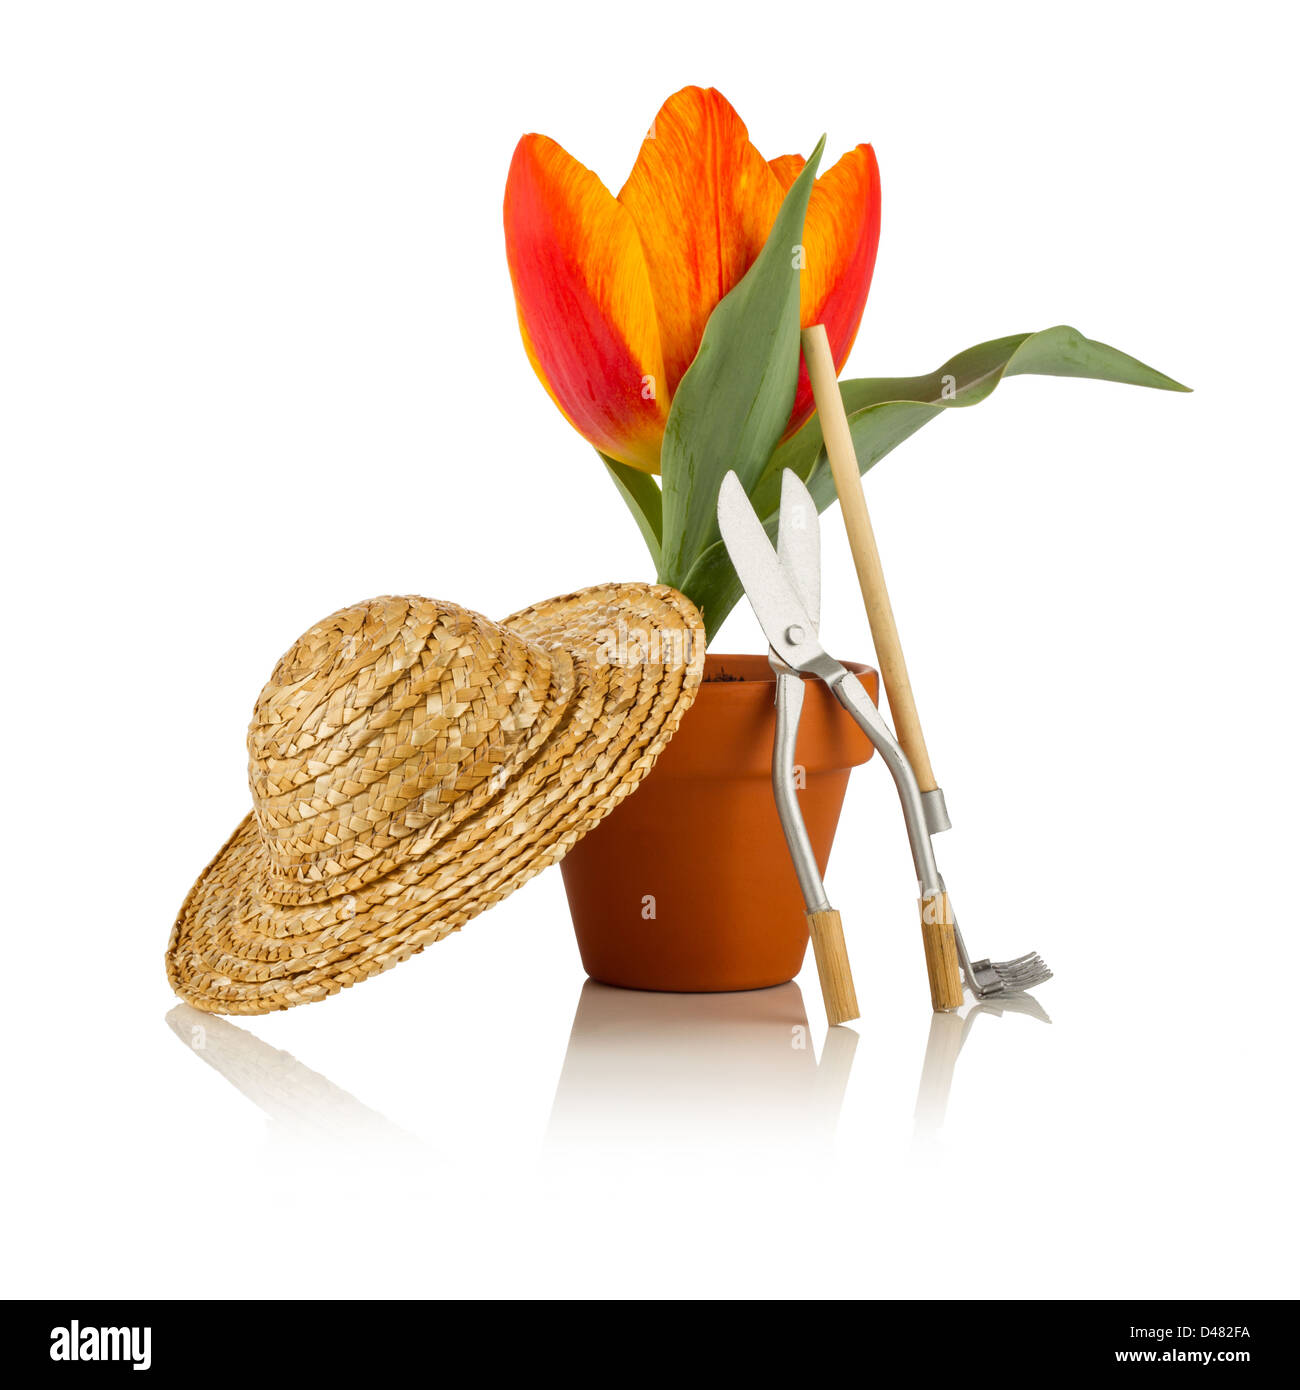 tulip with straw hat and garden tools - Stock Image